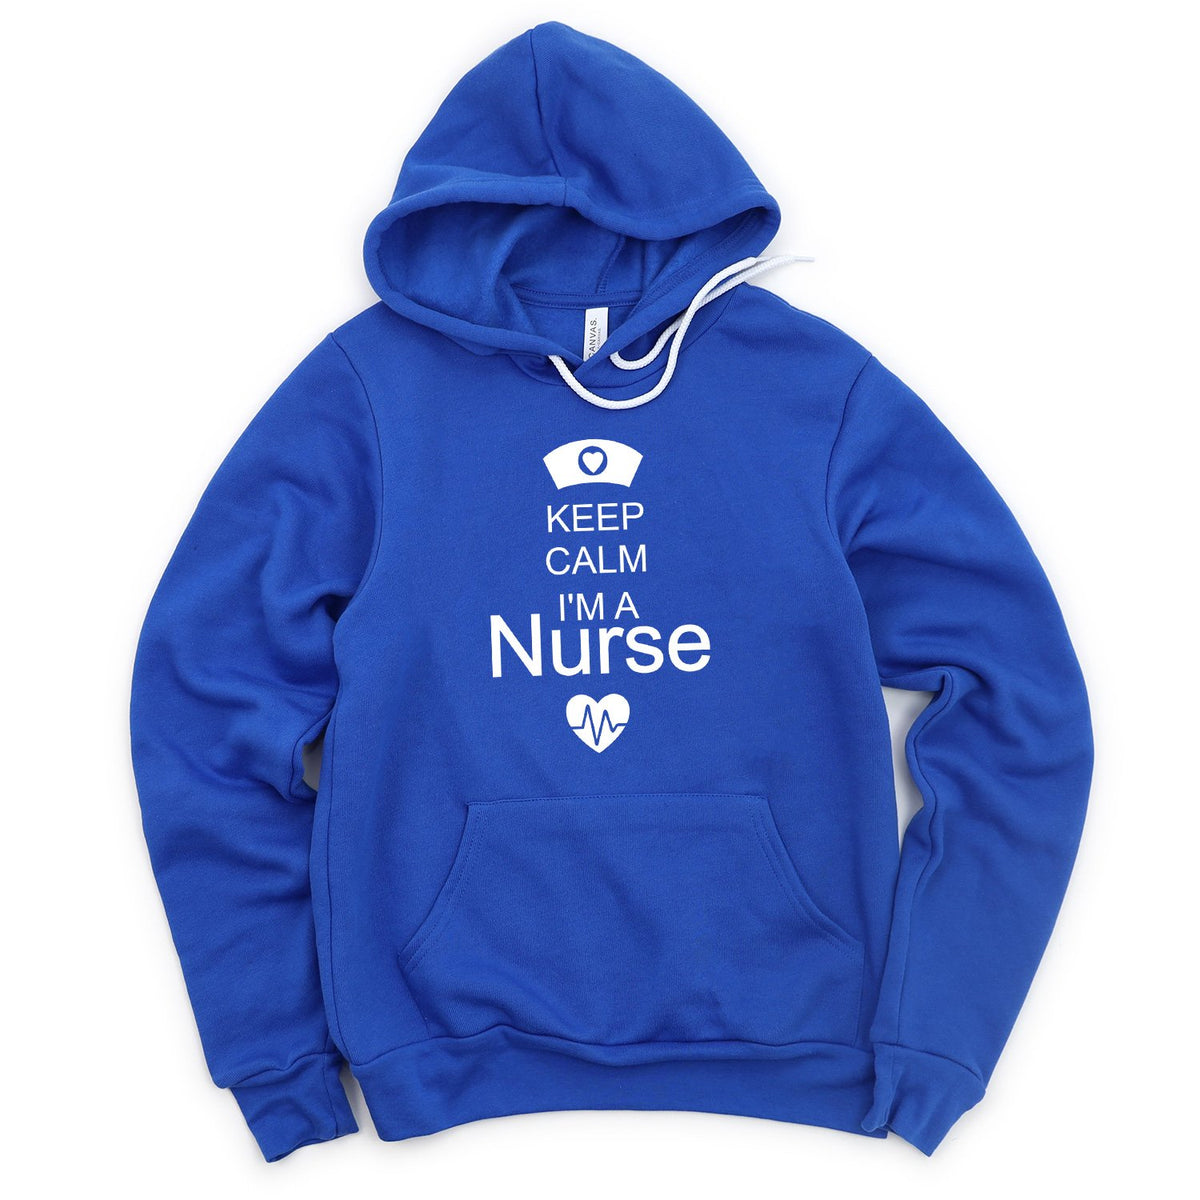 Keep Calm I'm A Nurse - Hoodie Sweatshirt